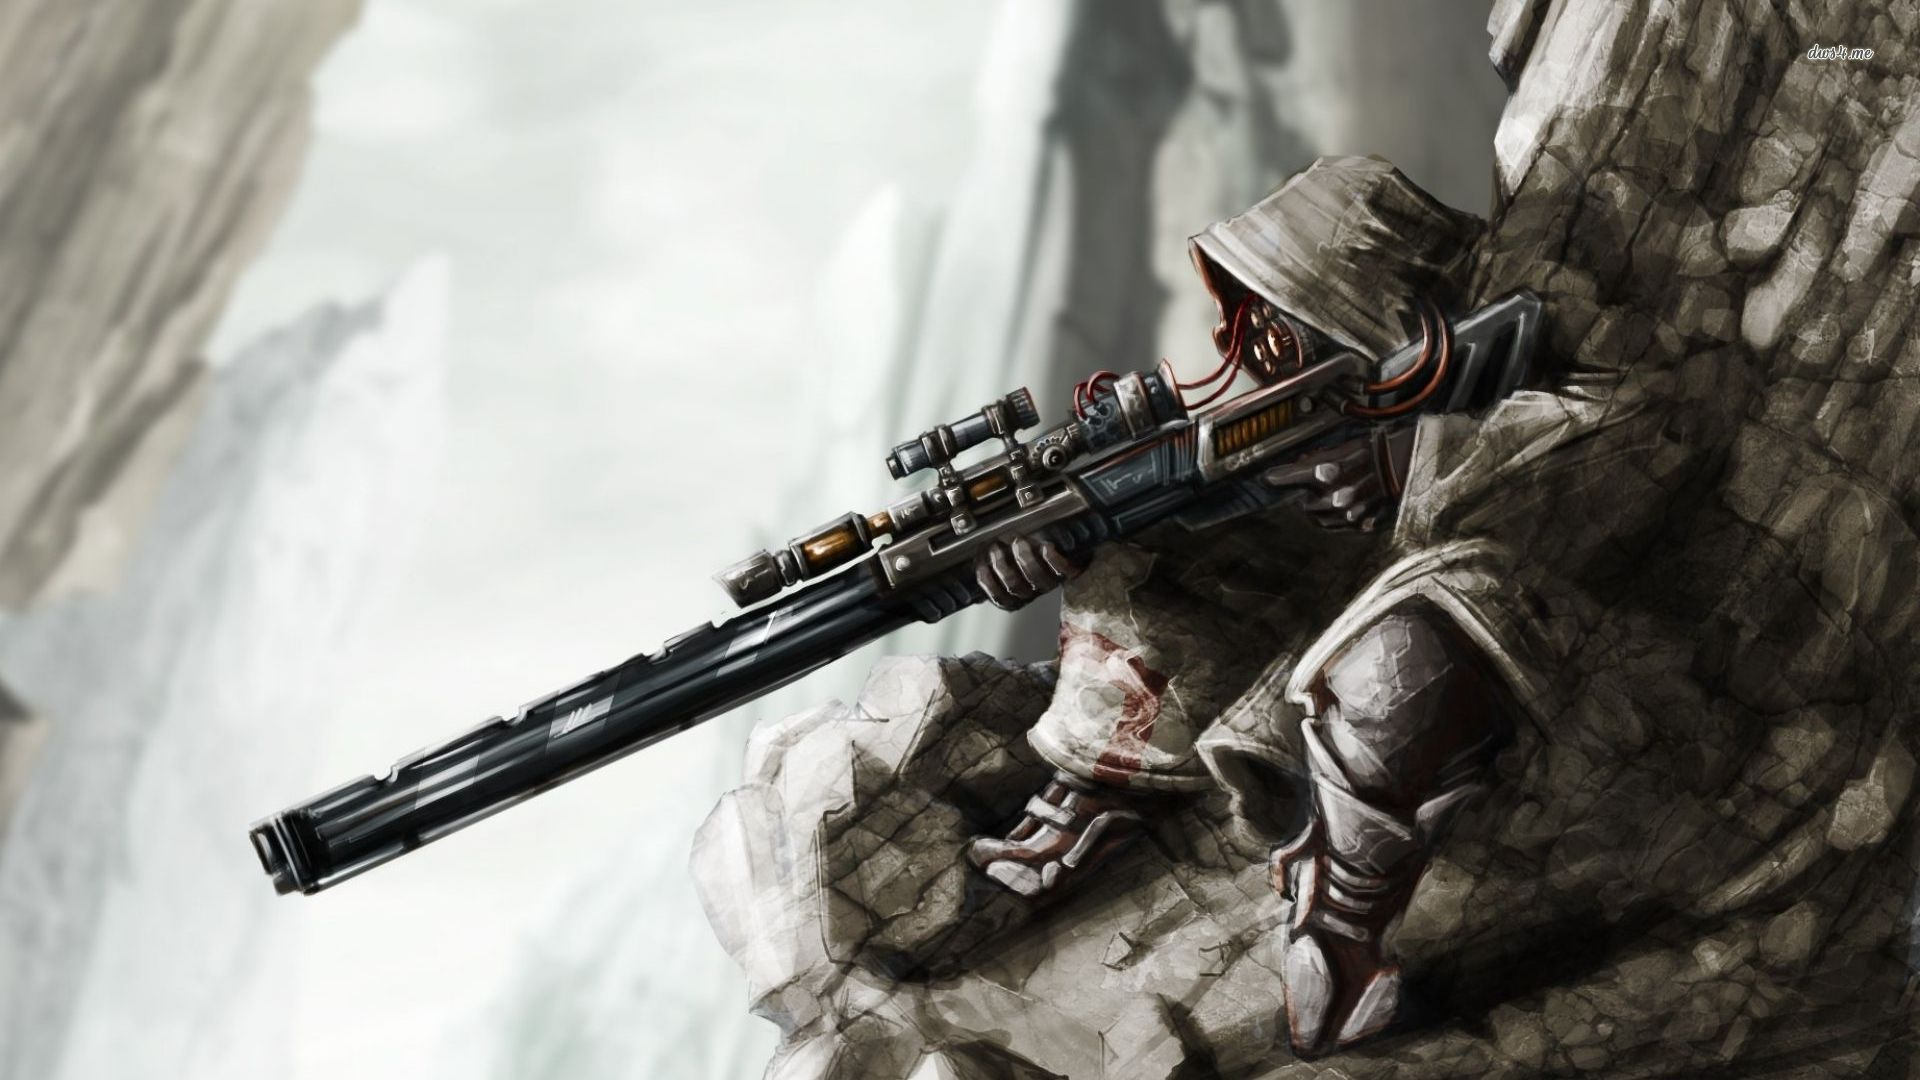 Sniper wallpaper   Photography wallpapers   17498 1920x1080